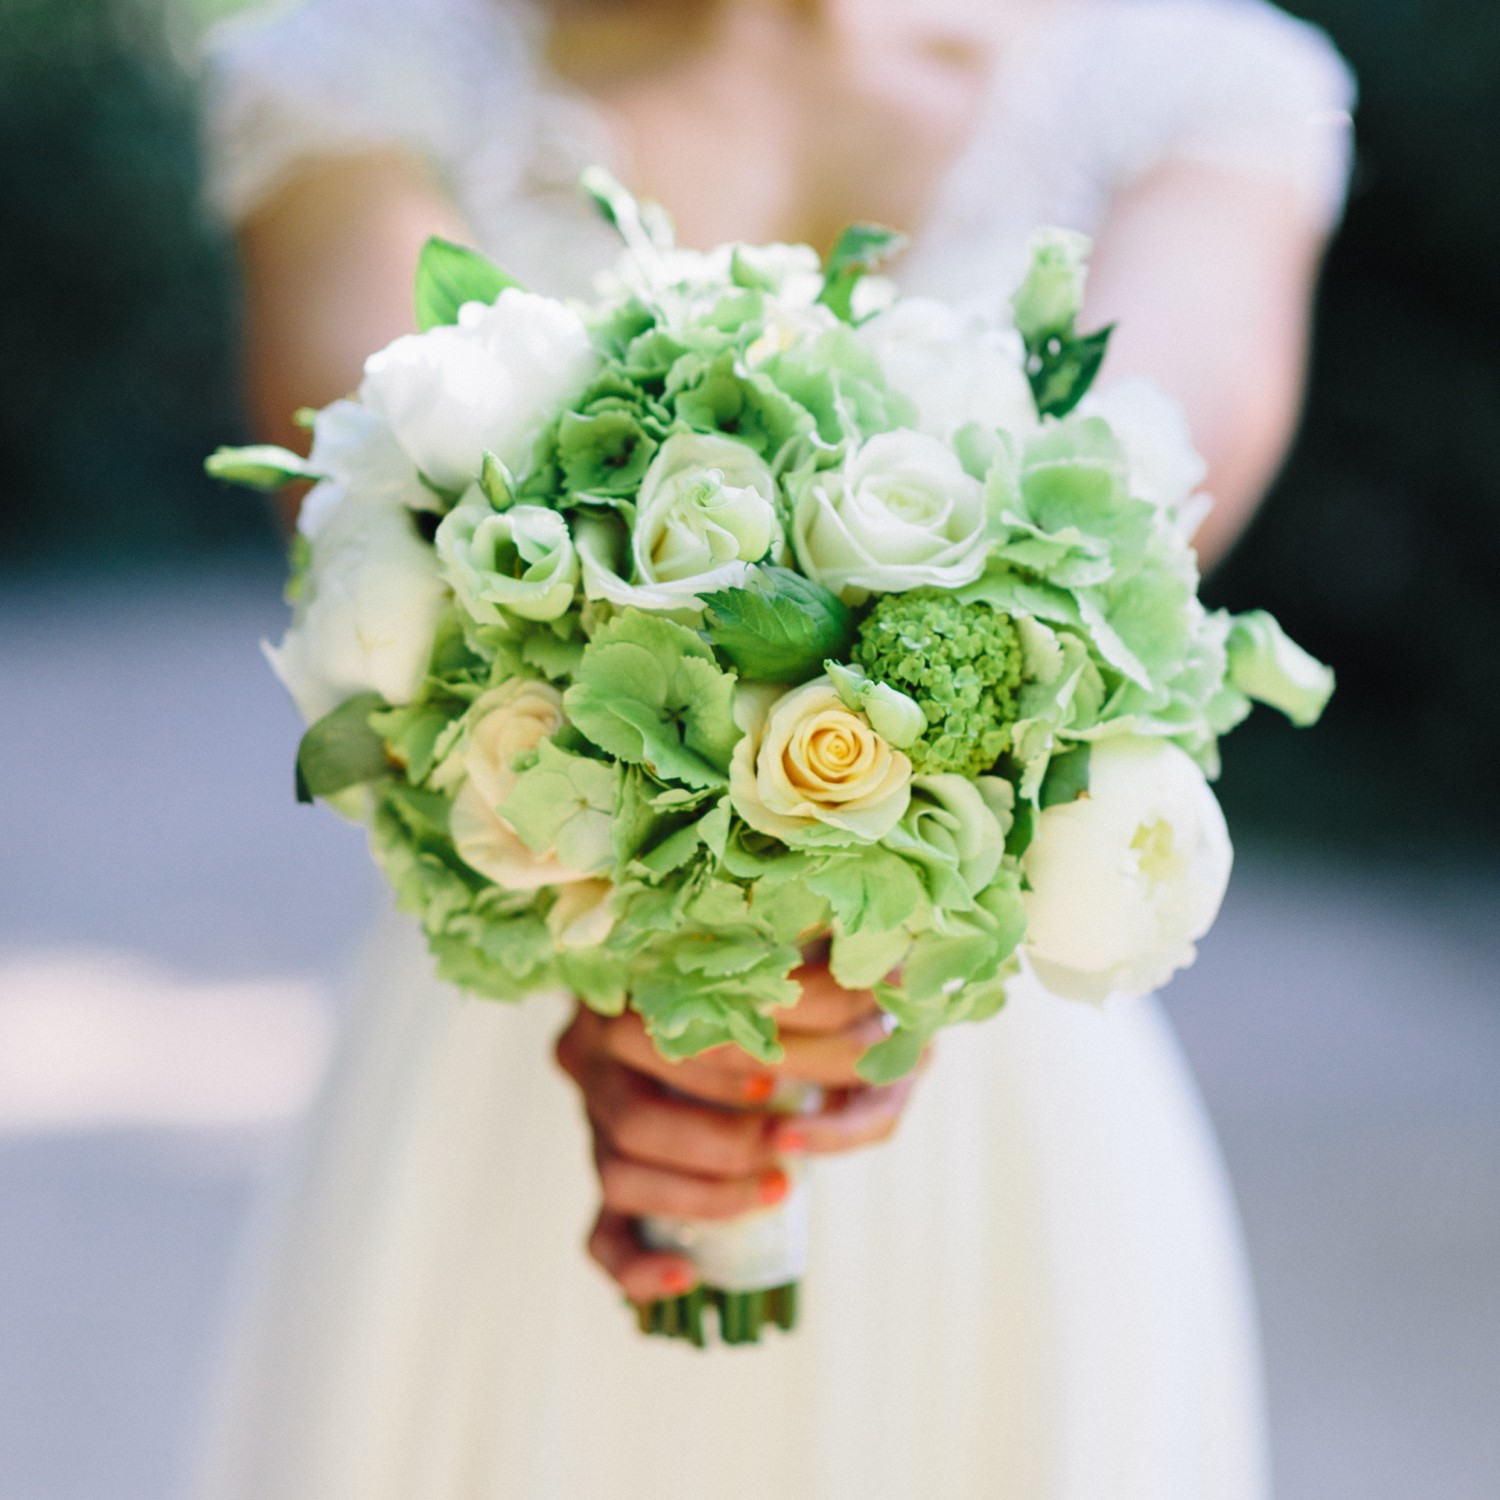 Catch These Bridal Bouquets Brides Bouquet Ideas Flower Magazine